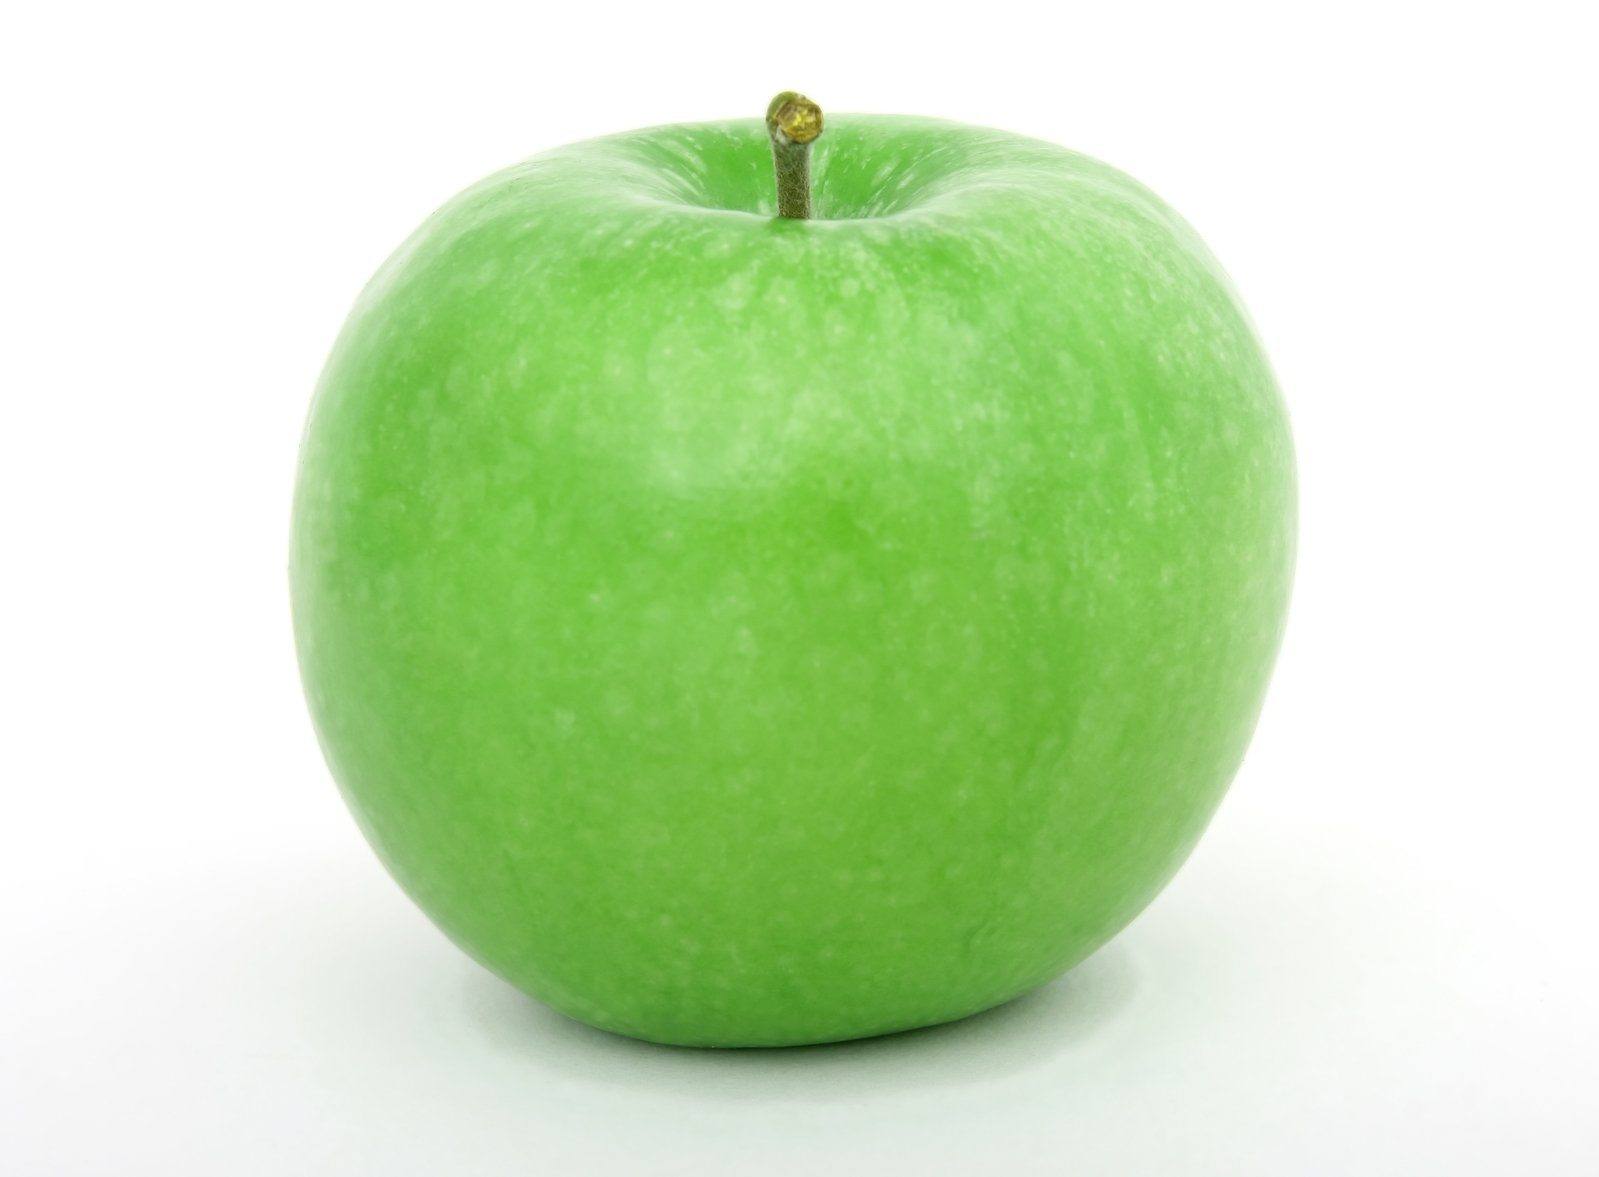 Free healthy green apple image fruit isolated over white